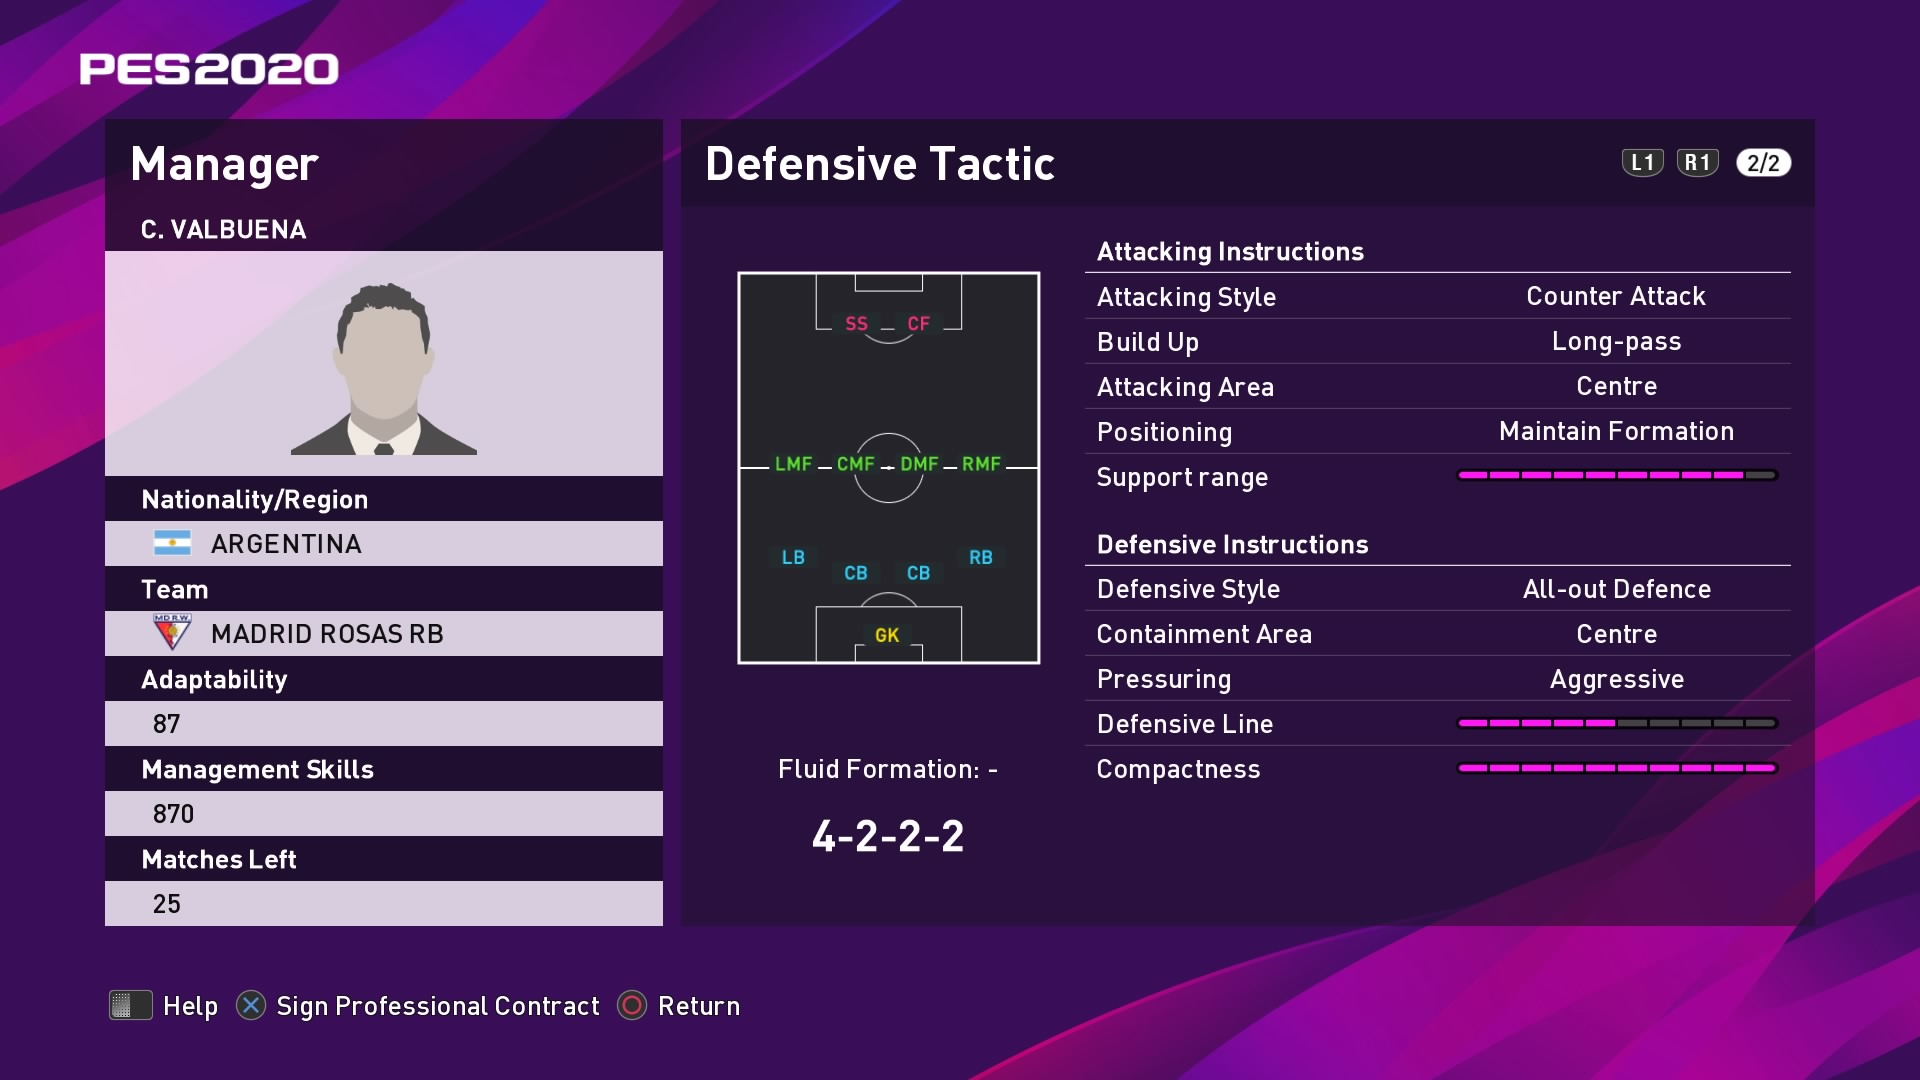 C. Valbuena (Diego Simeone) Defensive Tactic in PES 2020 myClub